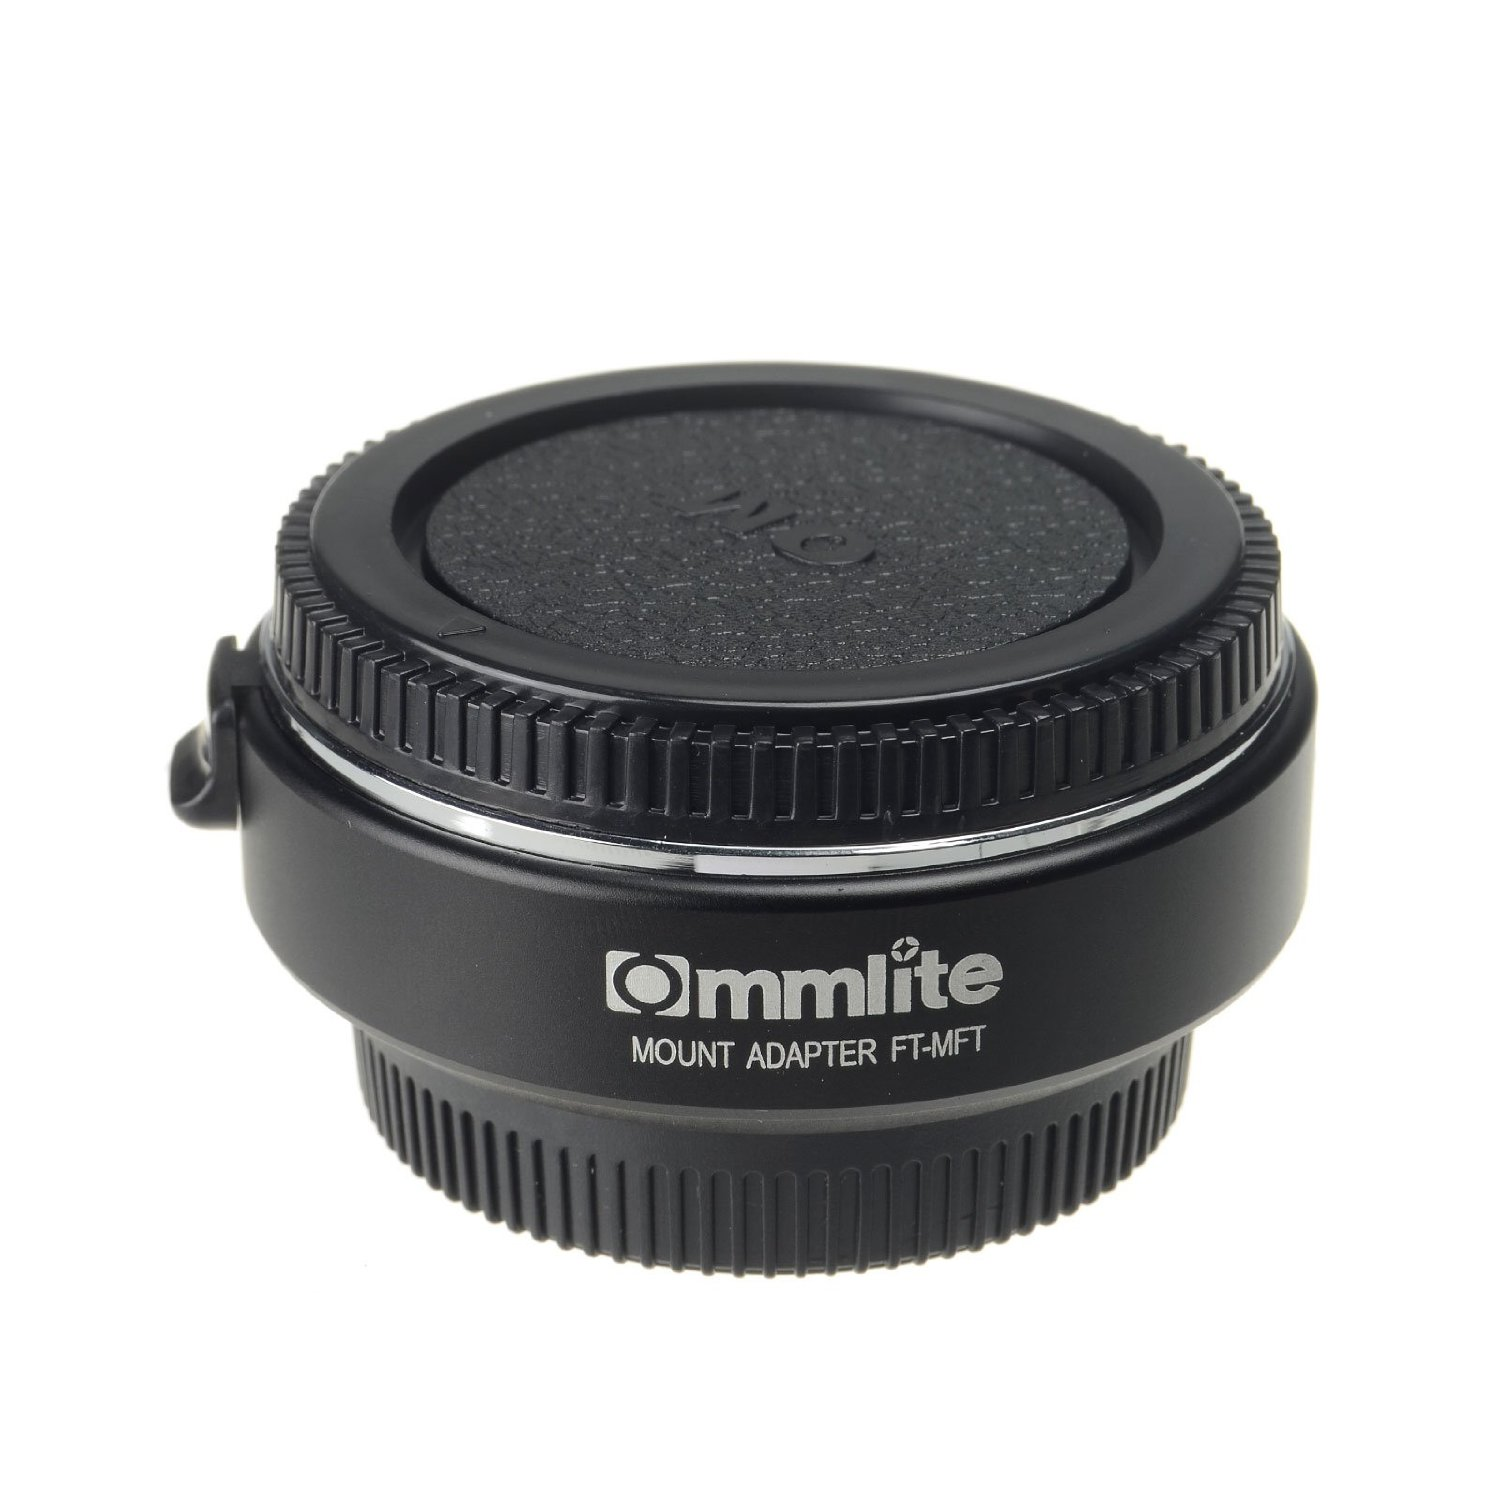 ФОТО Commlite CM-FT-MFT Electronic Auto Focus Lens Mount Adapter Ring for 4/3 Lens to Olympus M4/3